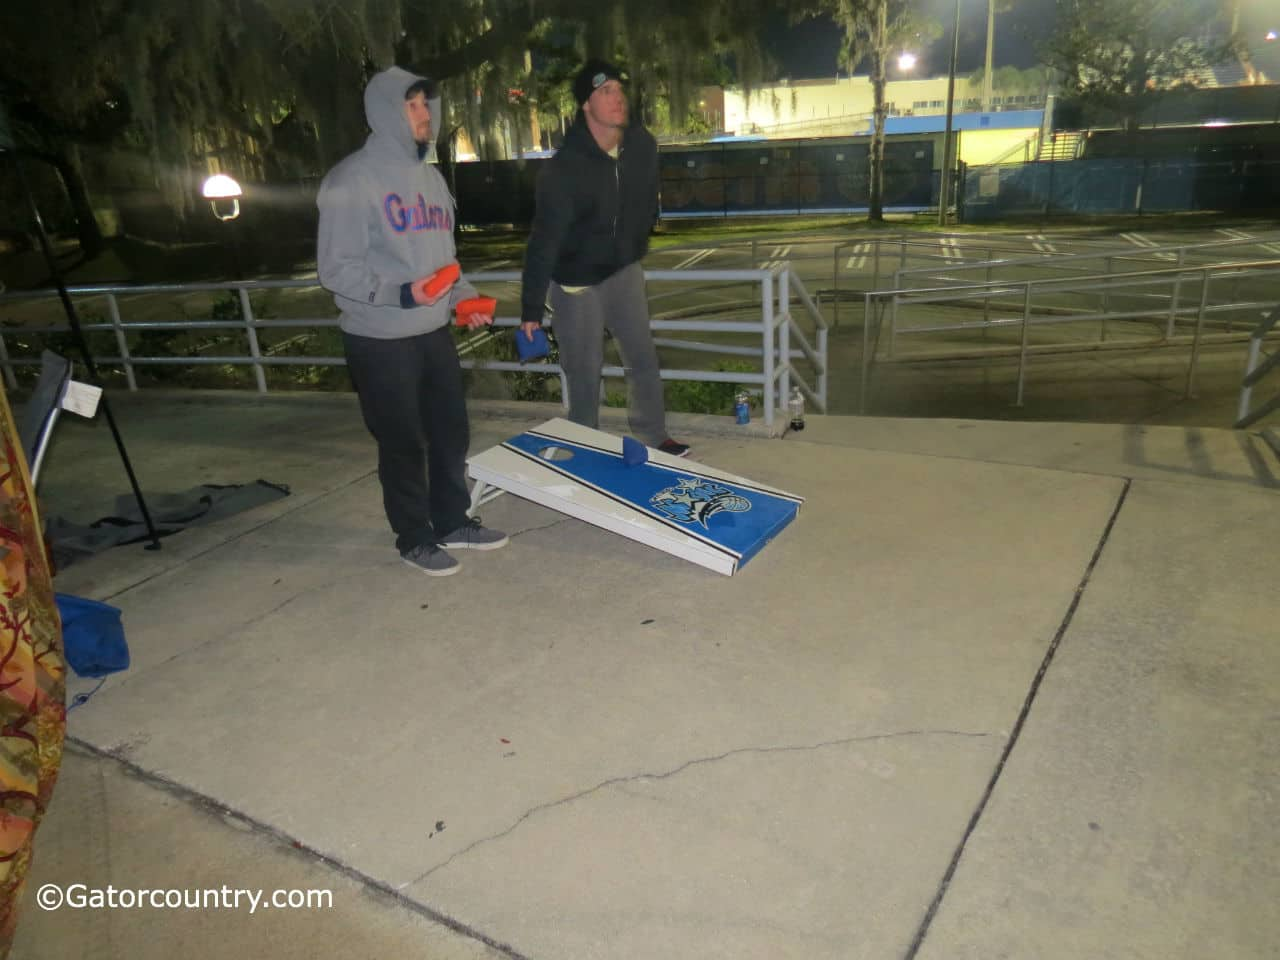 Students play the traditional tailgate game cornhole to pass the time.